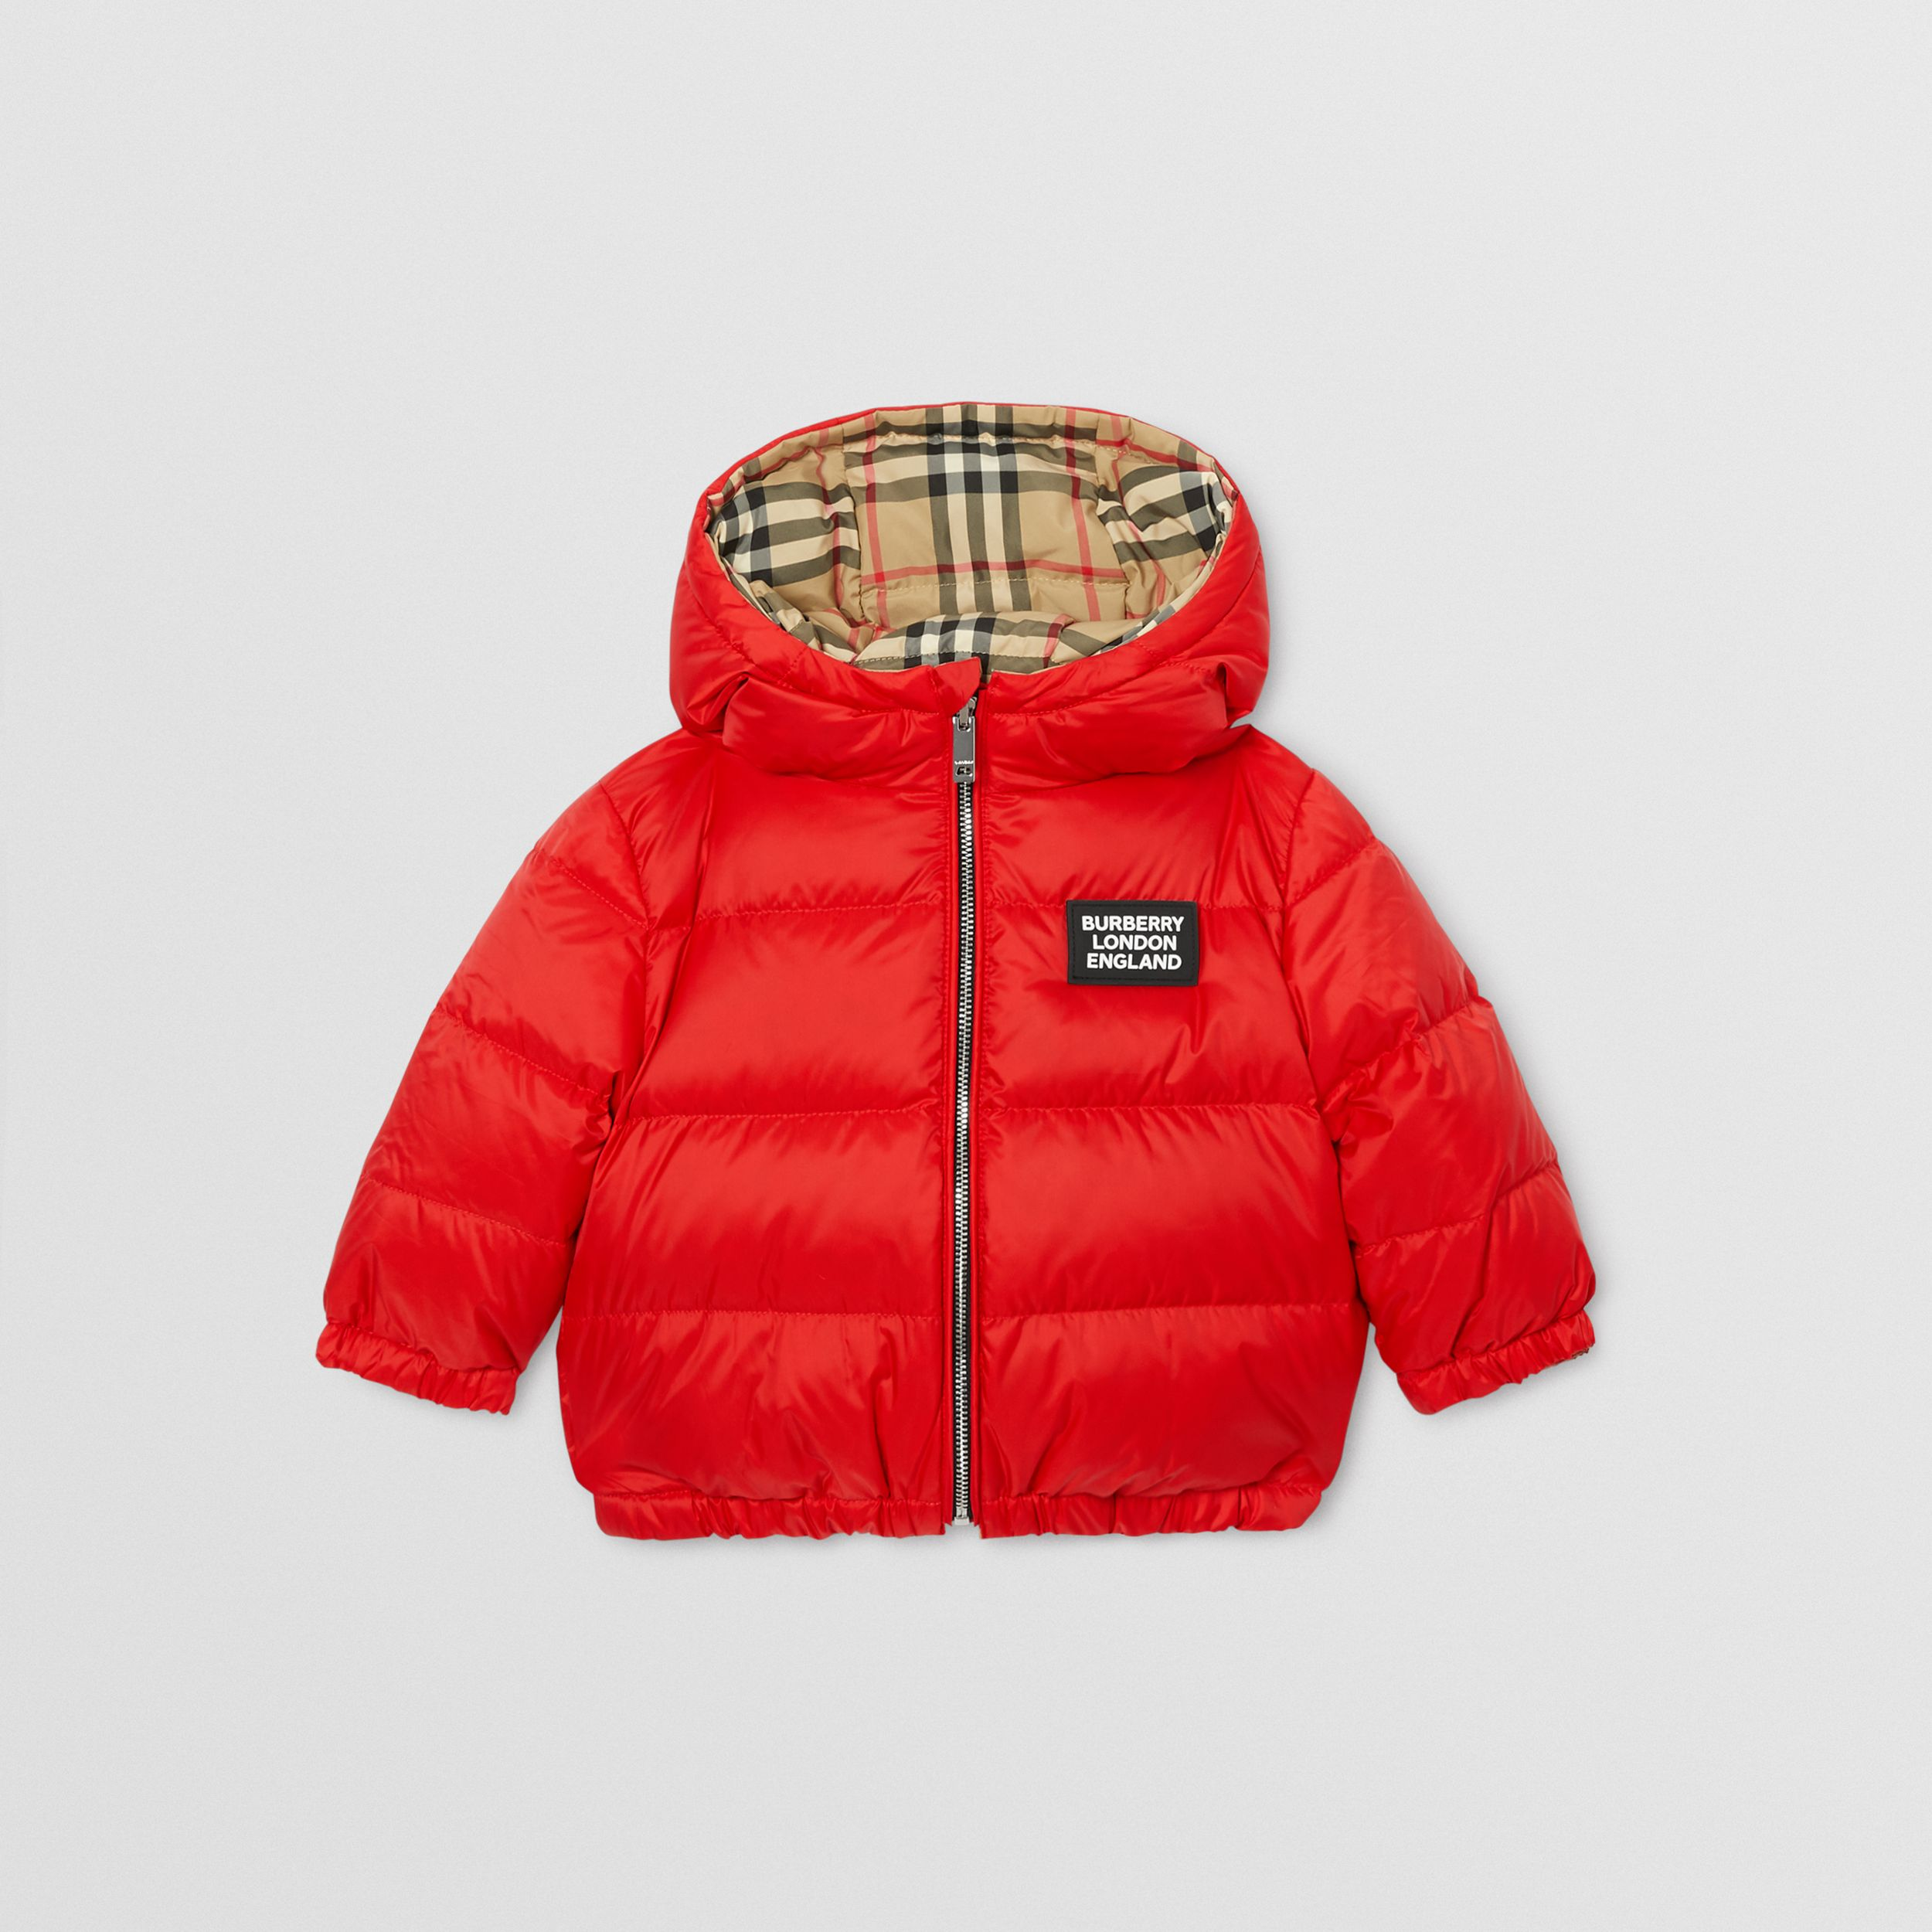 Reversible Vintage Check Down-filled Puffer Jacket in Bright Red - Children | Burberry - 1